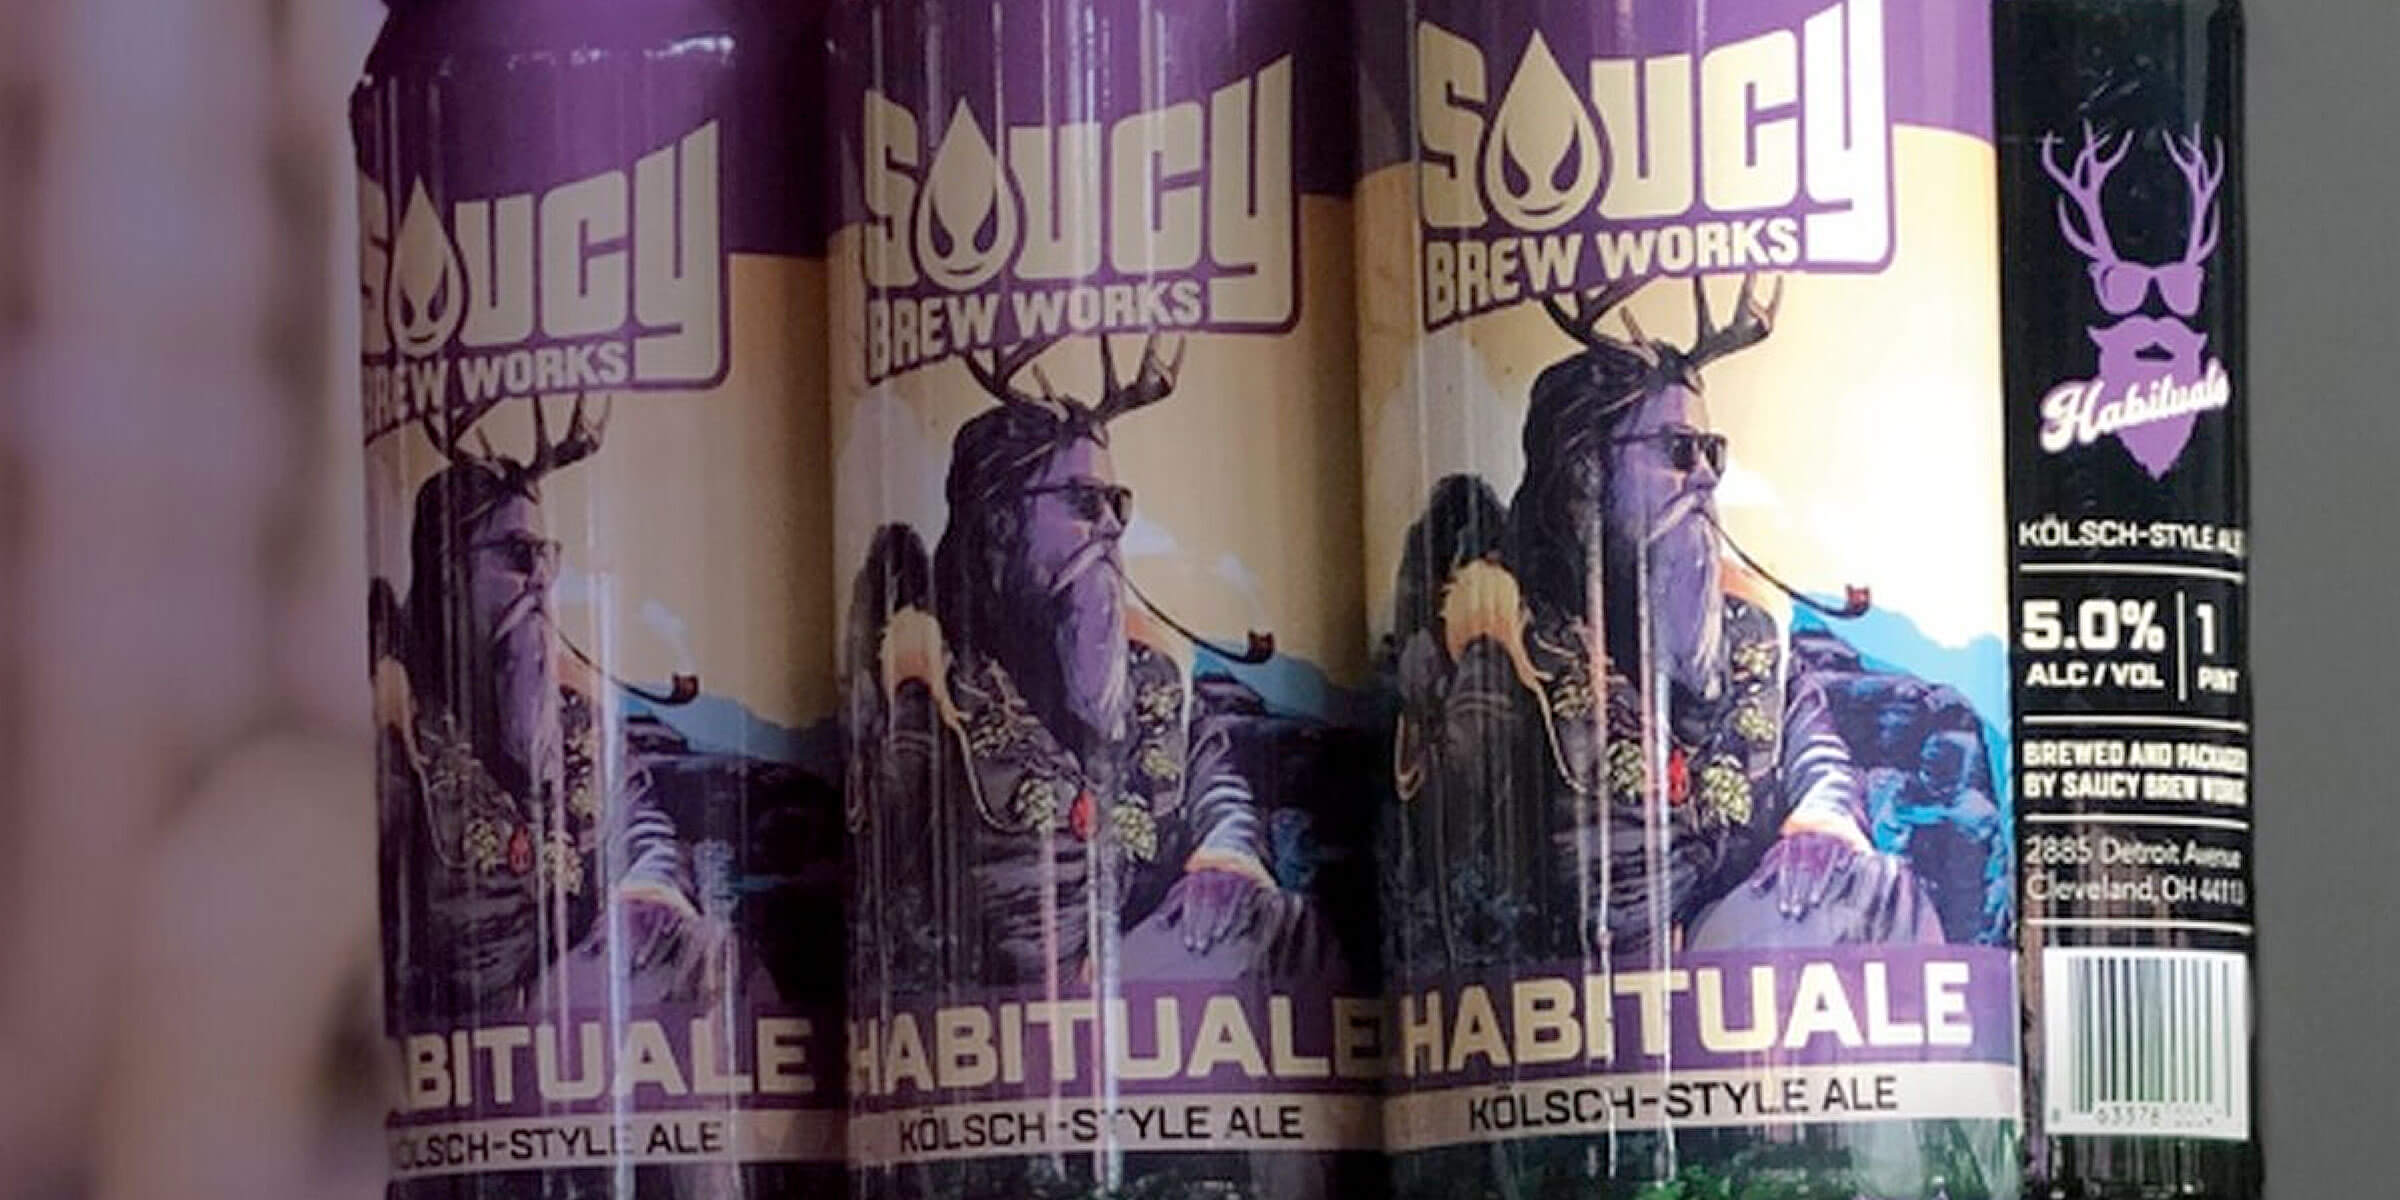 Six pack of 12 oz. cans of Habituale by Saucy Brew Works